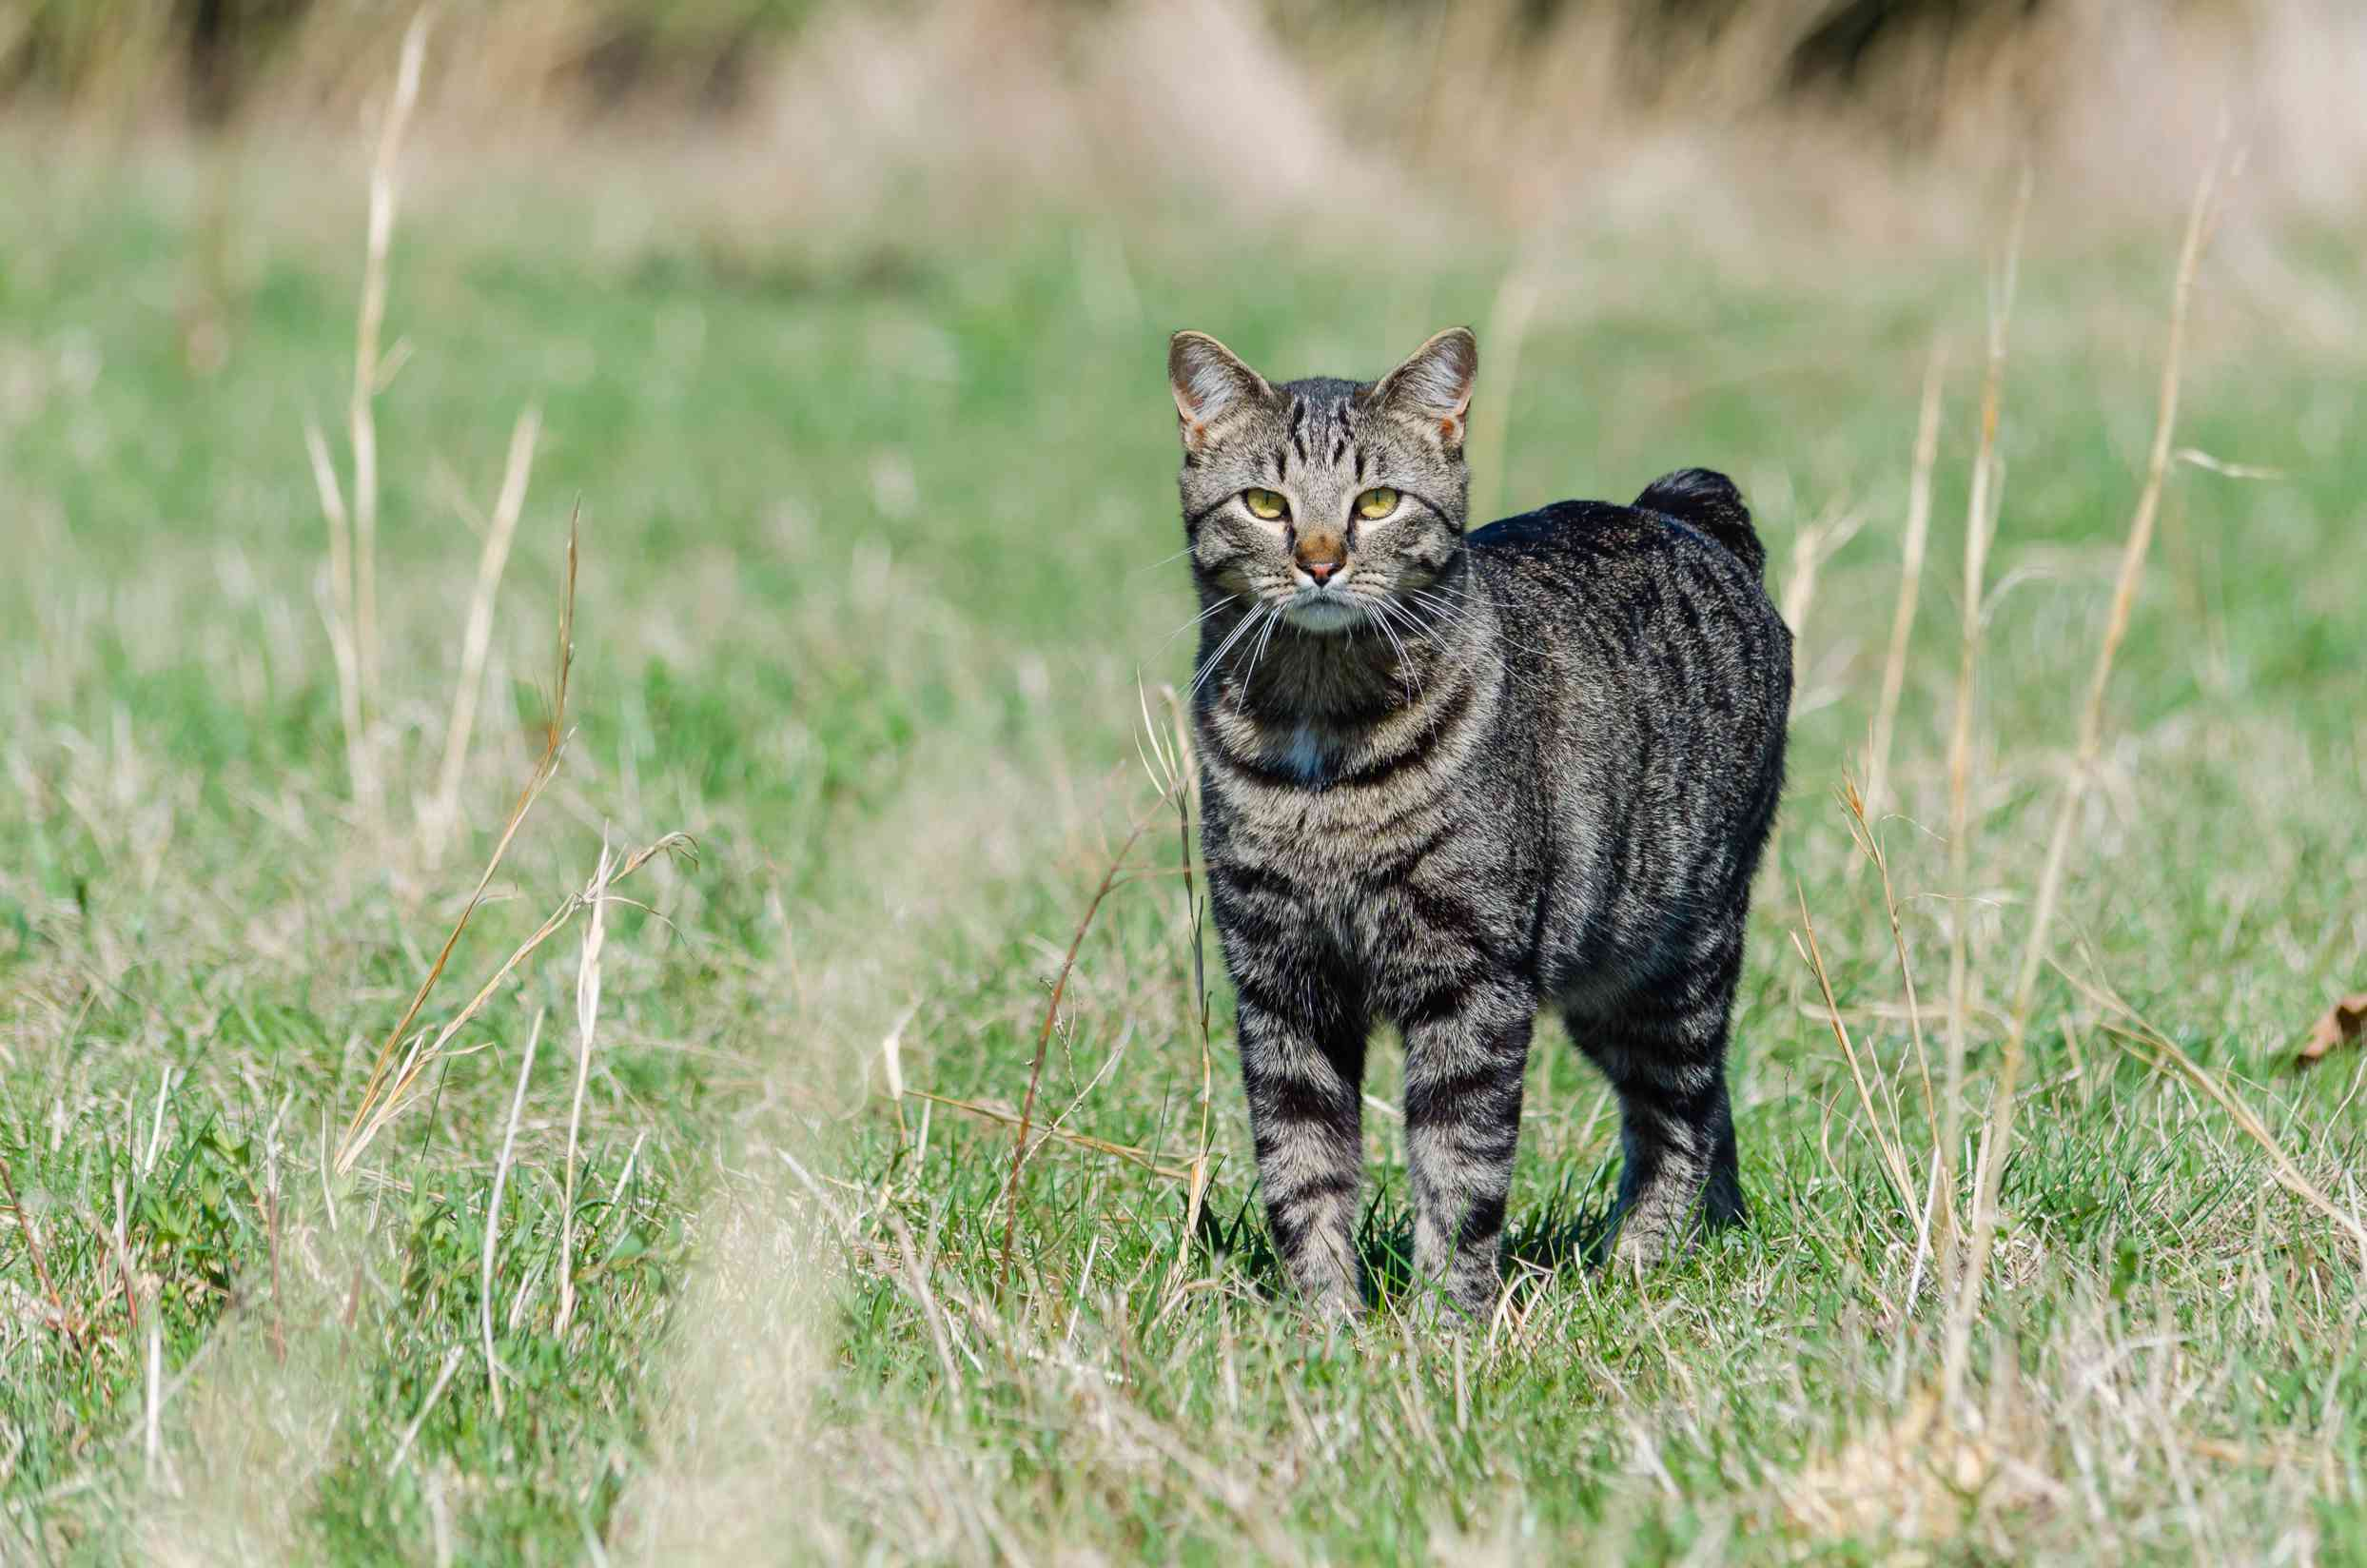 tabby-colored Manx cat standing in a field